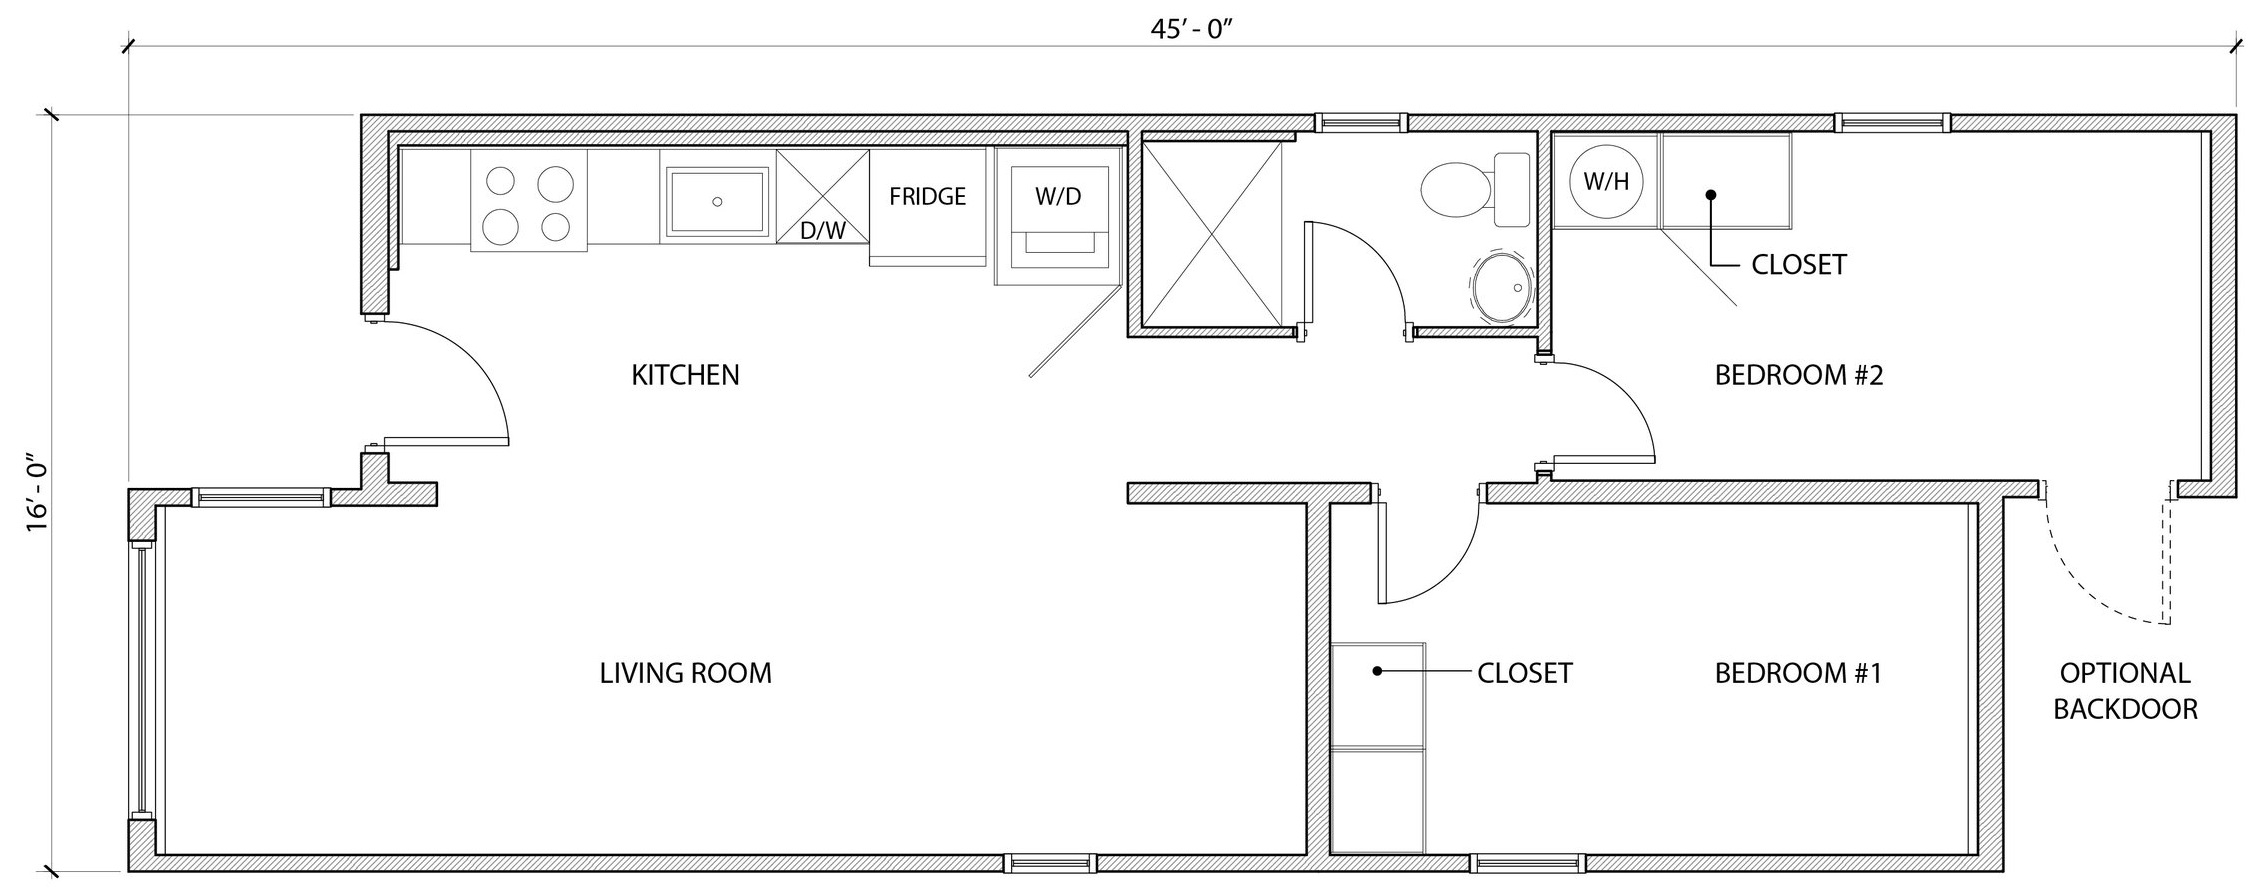 Standard Floor-Plans — inDwell on affordable to build home plans, inexpensive two-story house plans, simple affordable house plans, 2014 best house plans, affordable home designs, affordable house plans to build, affordable home builders, affordable house plans a frame, affordable modern home plans, affordable home building, affordable open floor plans, affordable modern prefab homes, affordable 6 bedroom house plans, affordable housing design, affordable 4 bedroom house plans, affordable log homes, affordable home remodeling, affordable house plans 2000 sq, affordable home furniture, affordable duplex plans,